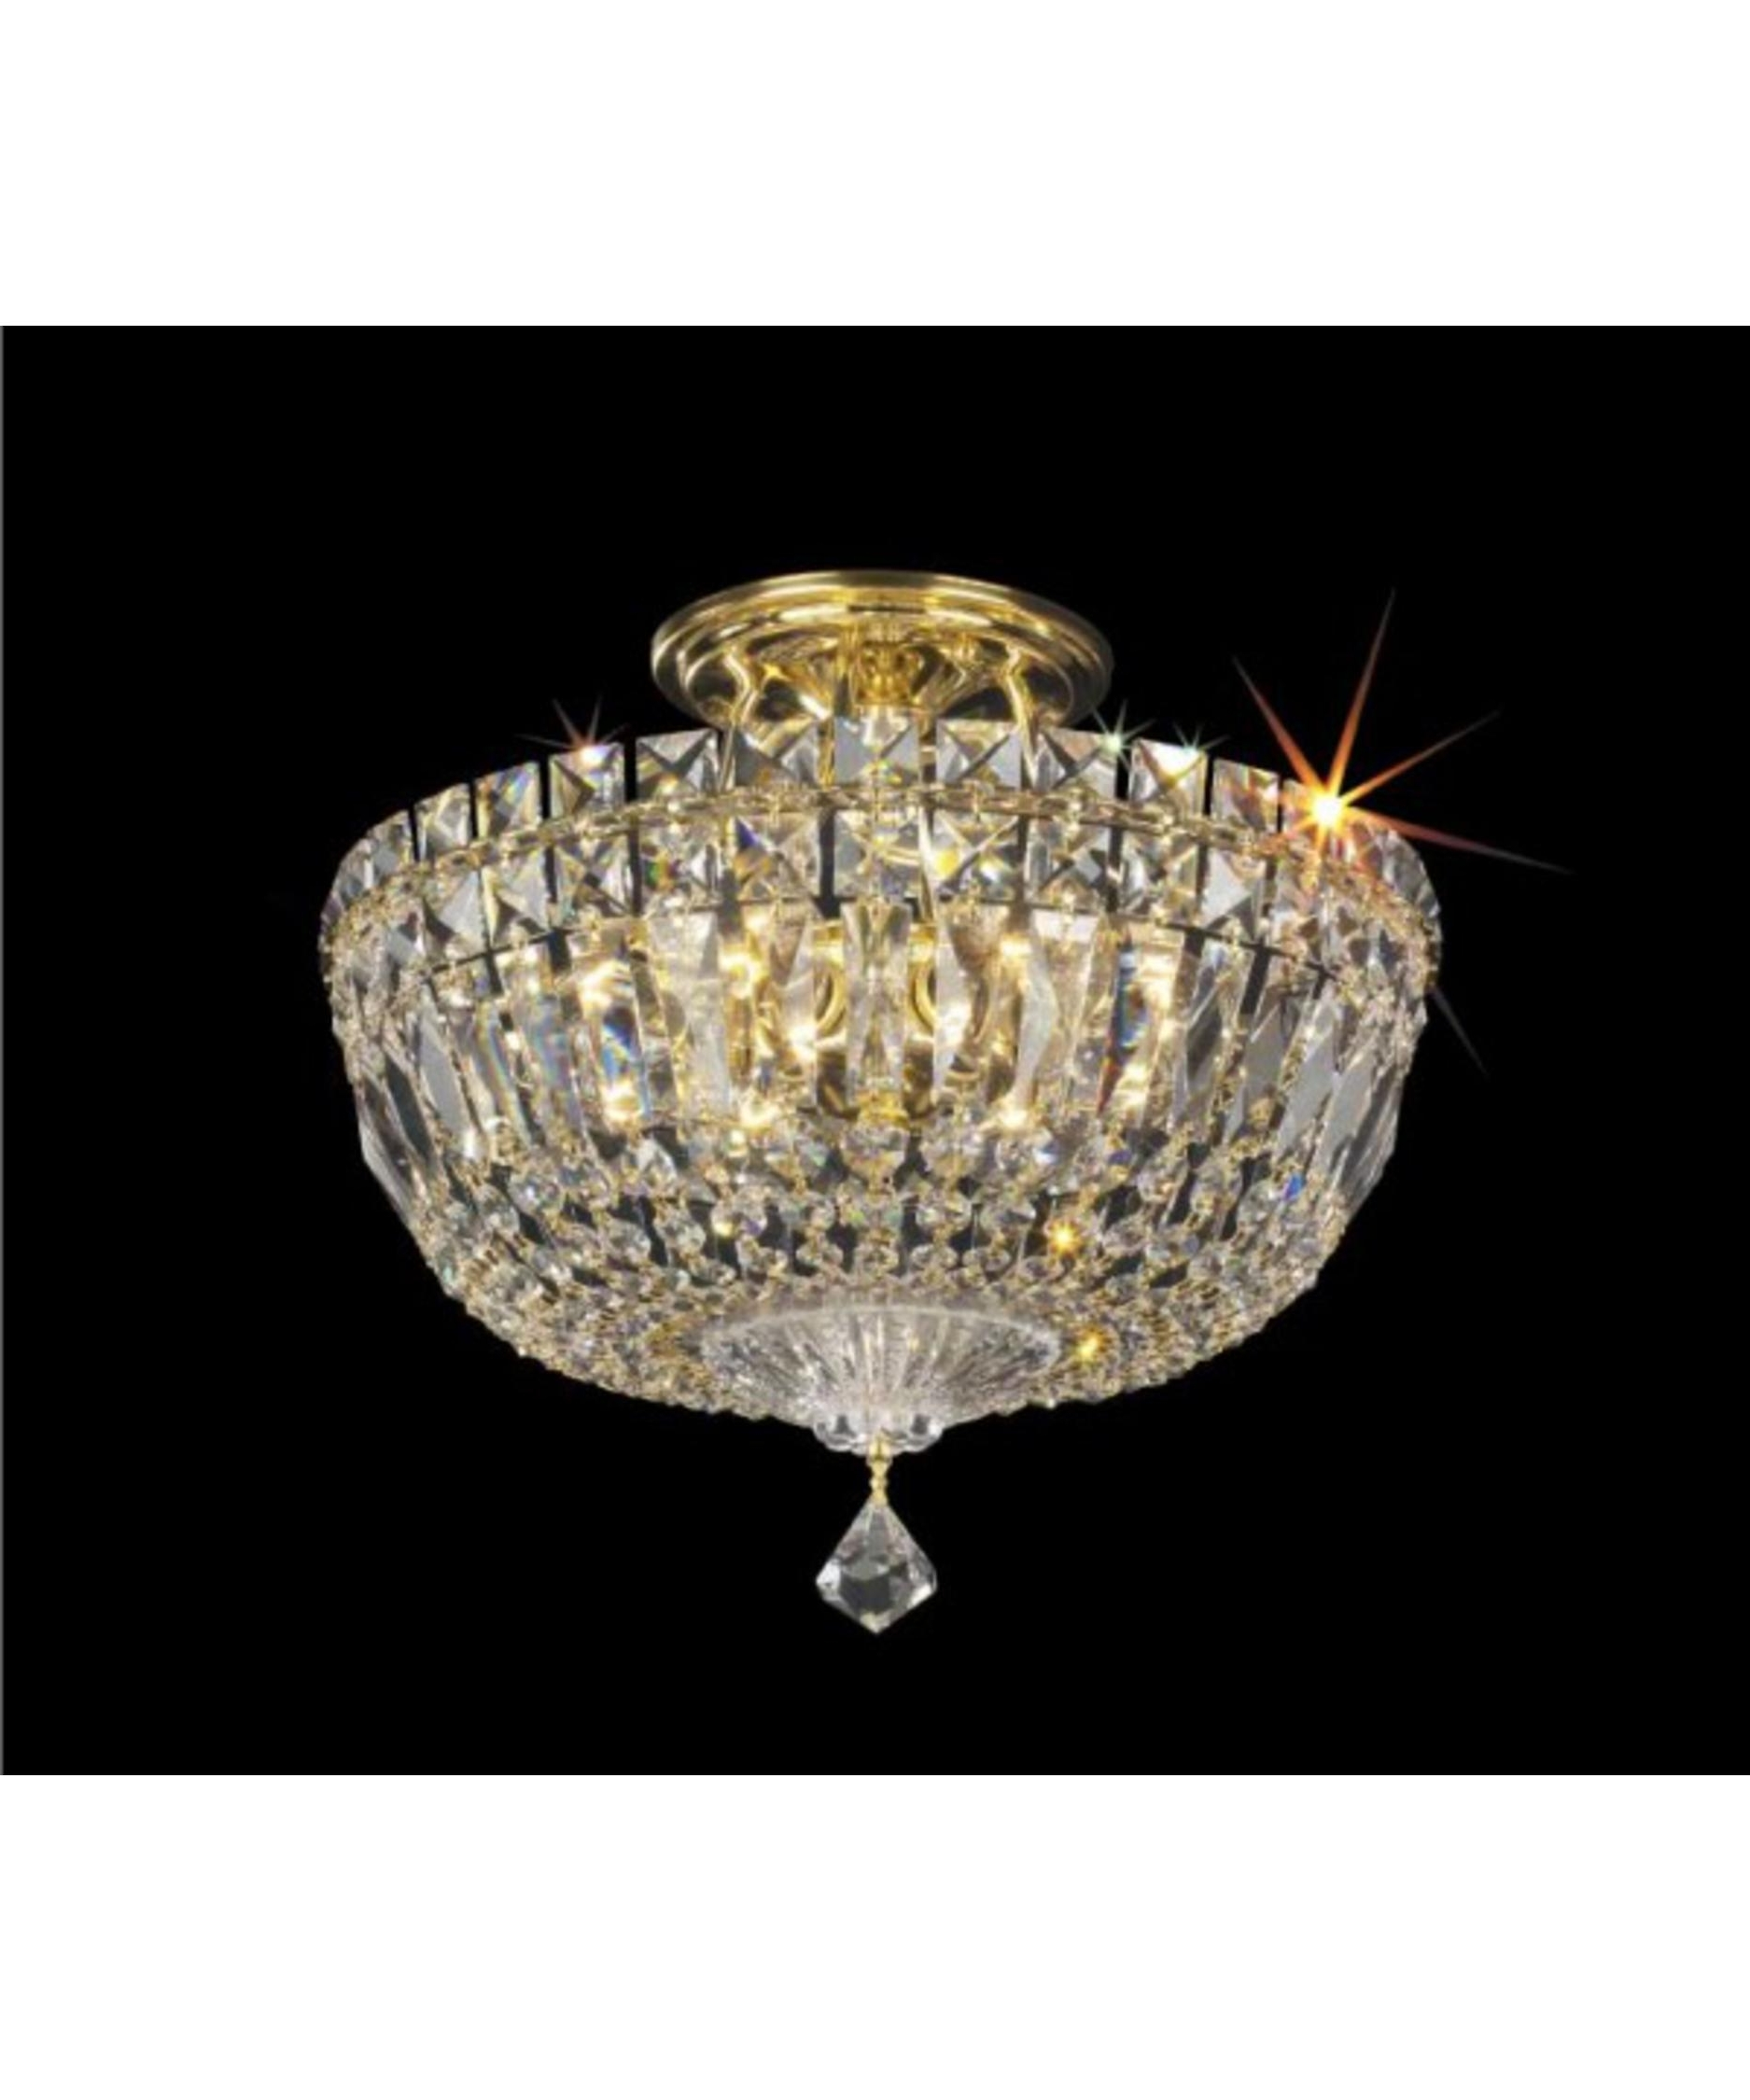 Favorite Light : Lovely Crystal Semi Flush Mount Lighting In Chandelier Of Inside Wall Mount Crystal Chandeliers (View 1 of 15)